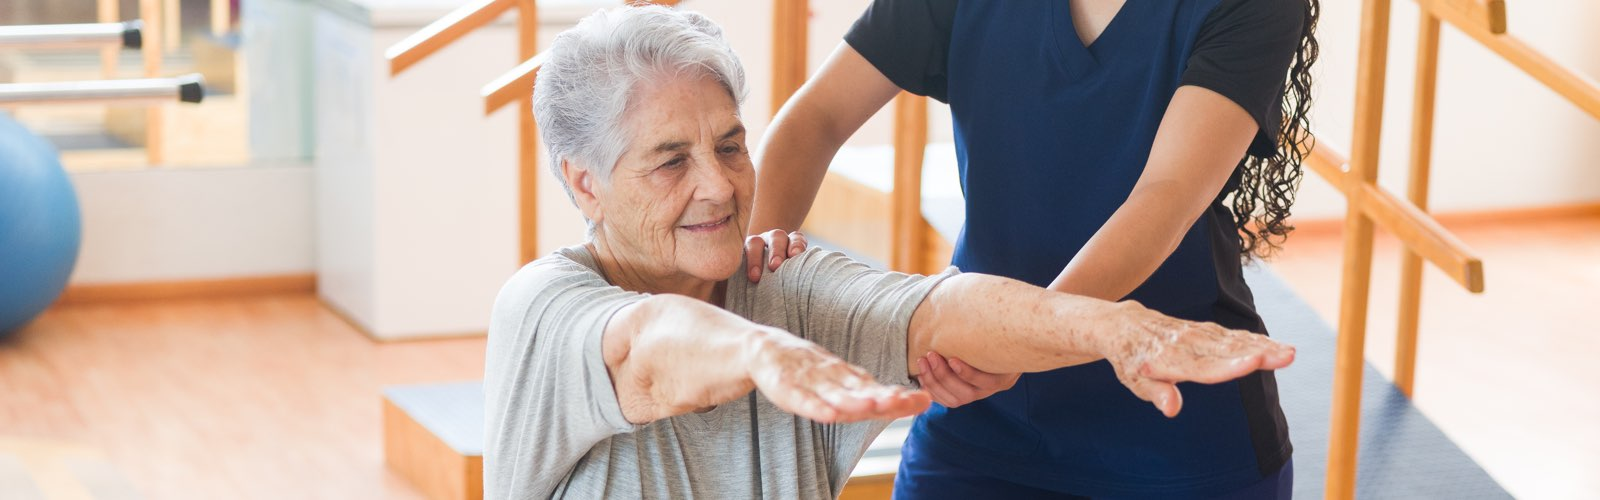 Physical therapist holding older patient's arms outstretched